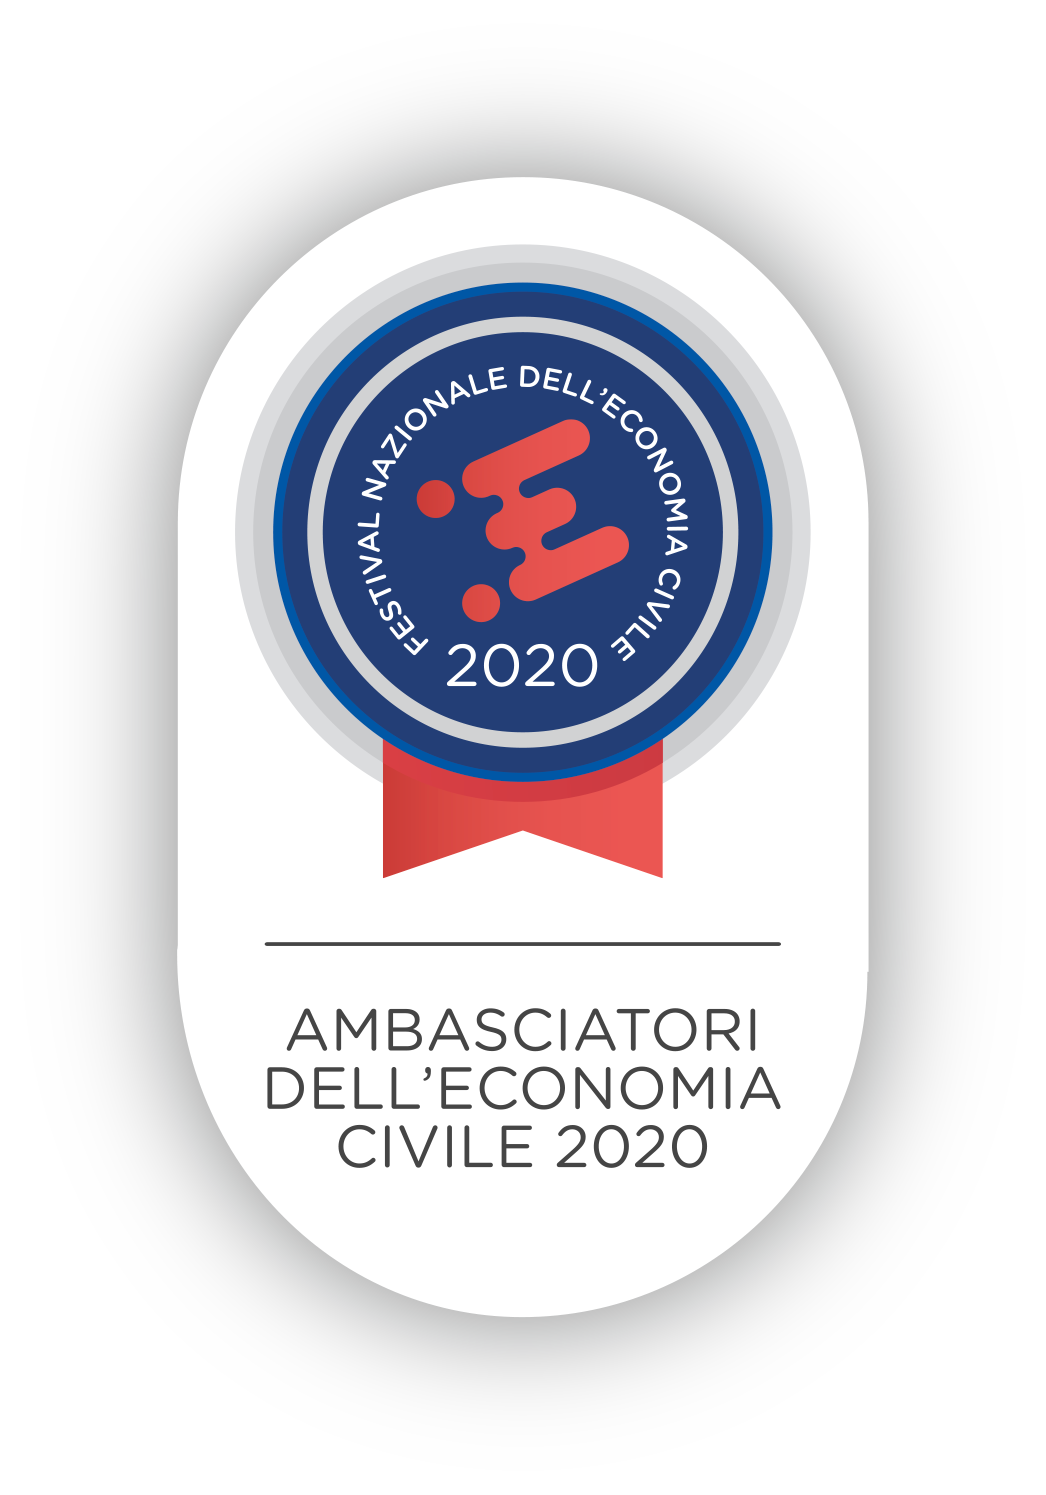 Badge Ambasciatori dell'Economia Civile 2020